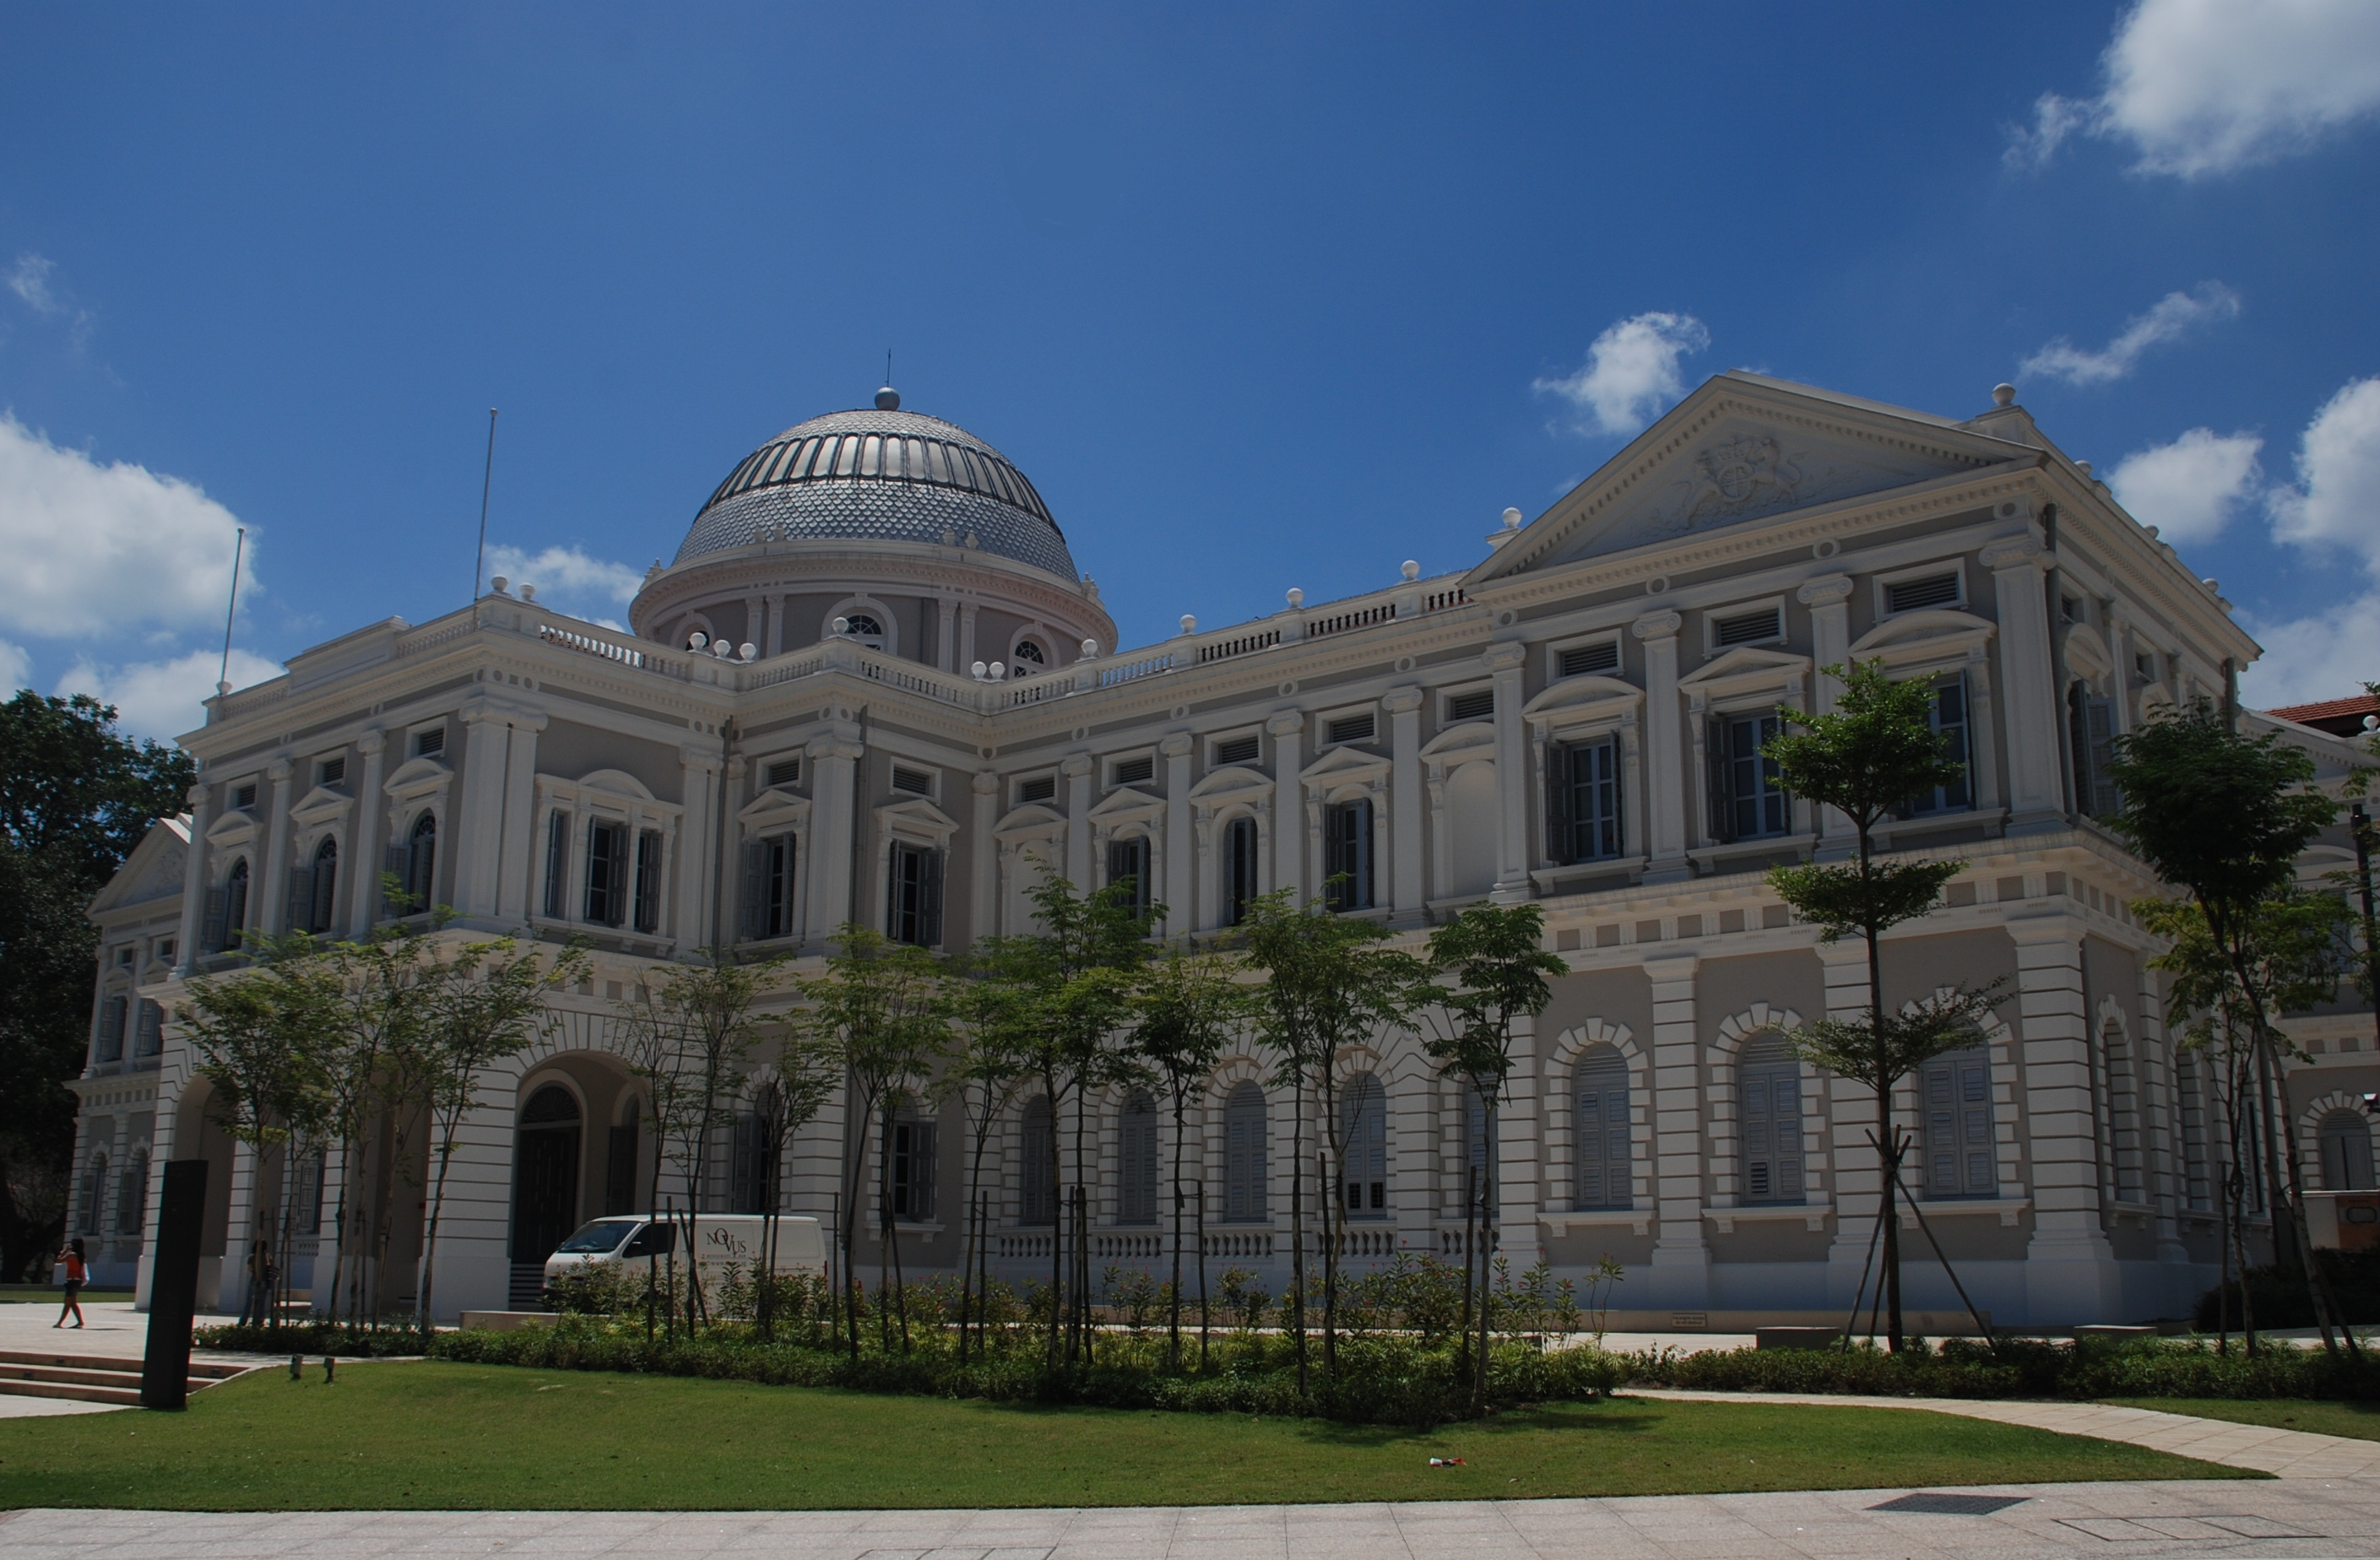 File:National Museum of Singapore.JPG - Wikimedia Commons